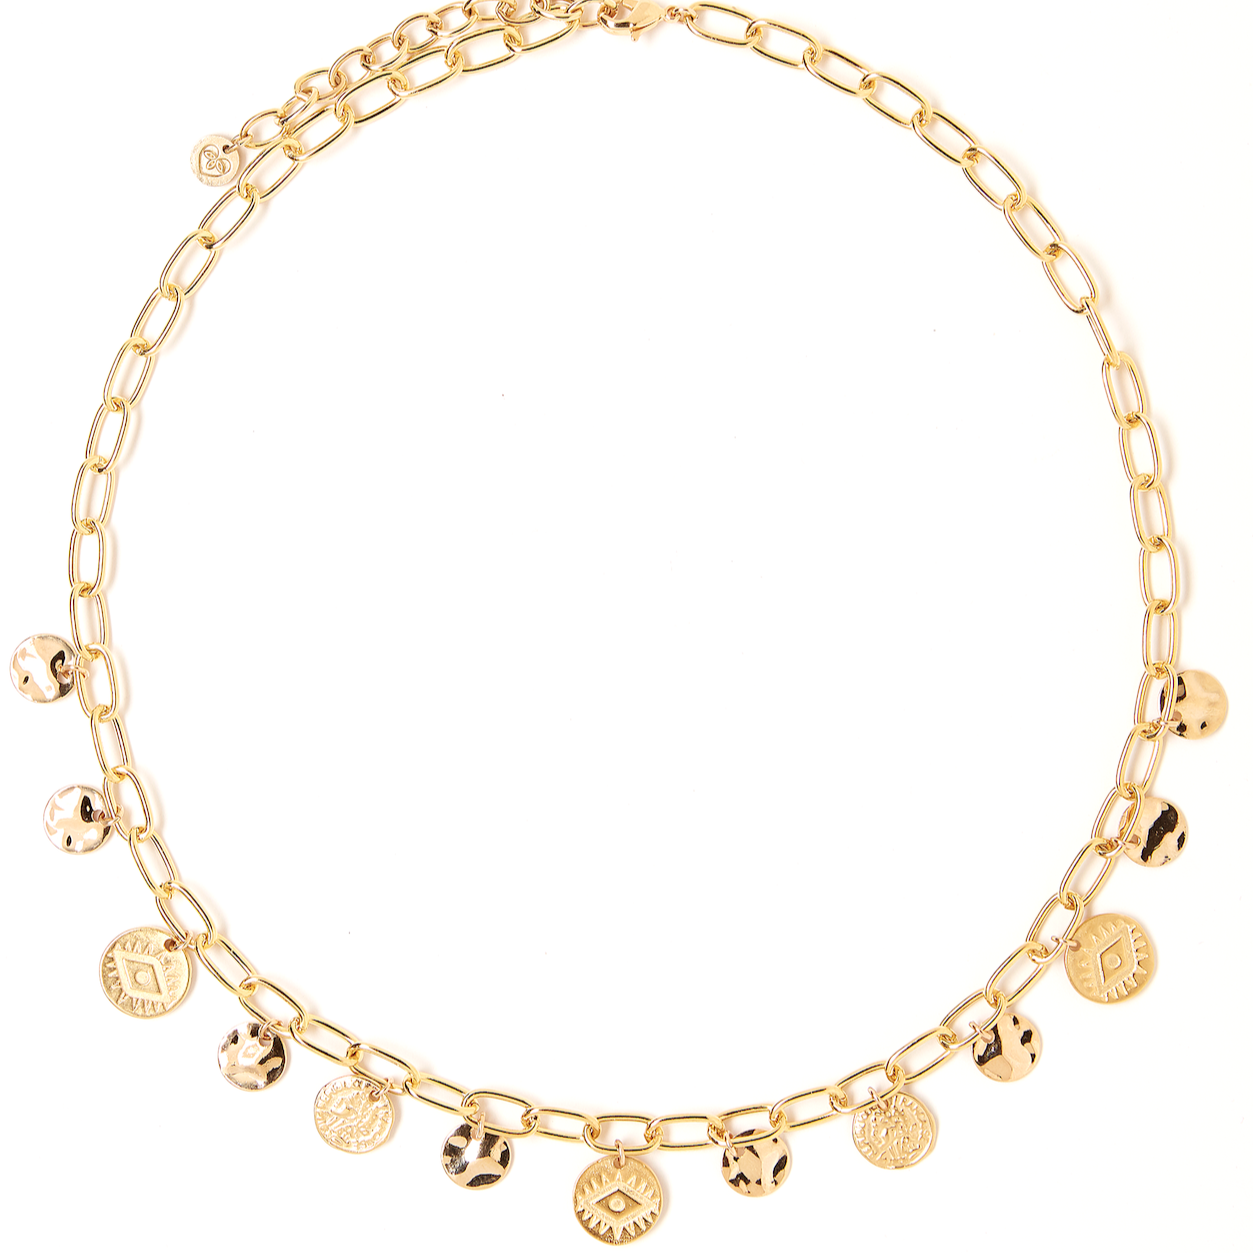 Golden Coin Charm Necklace